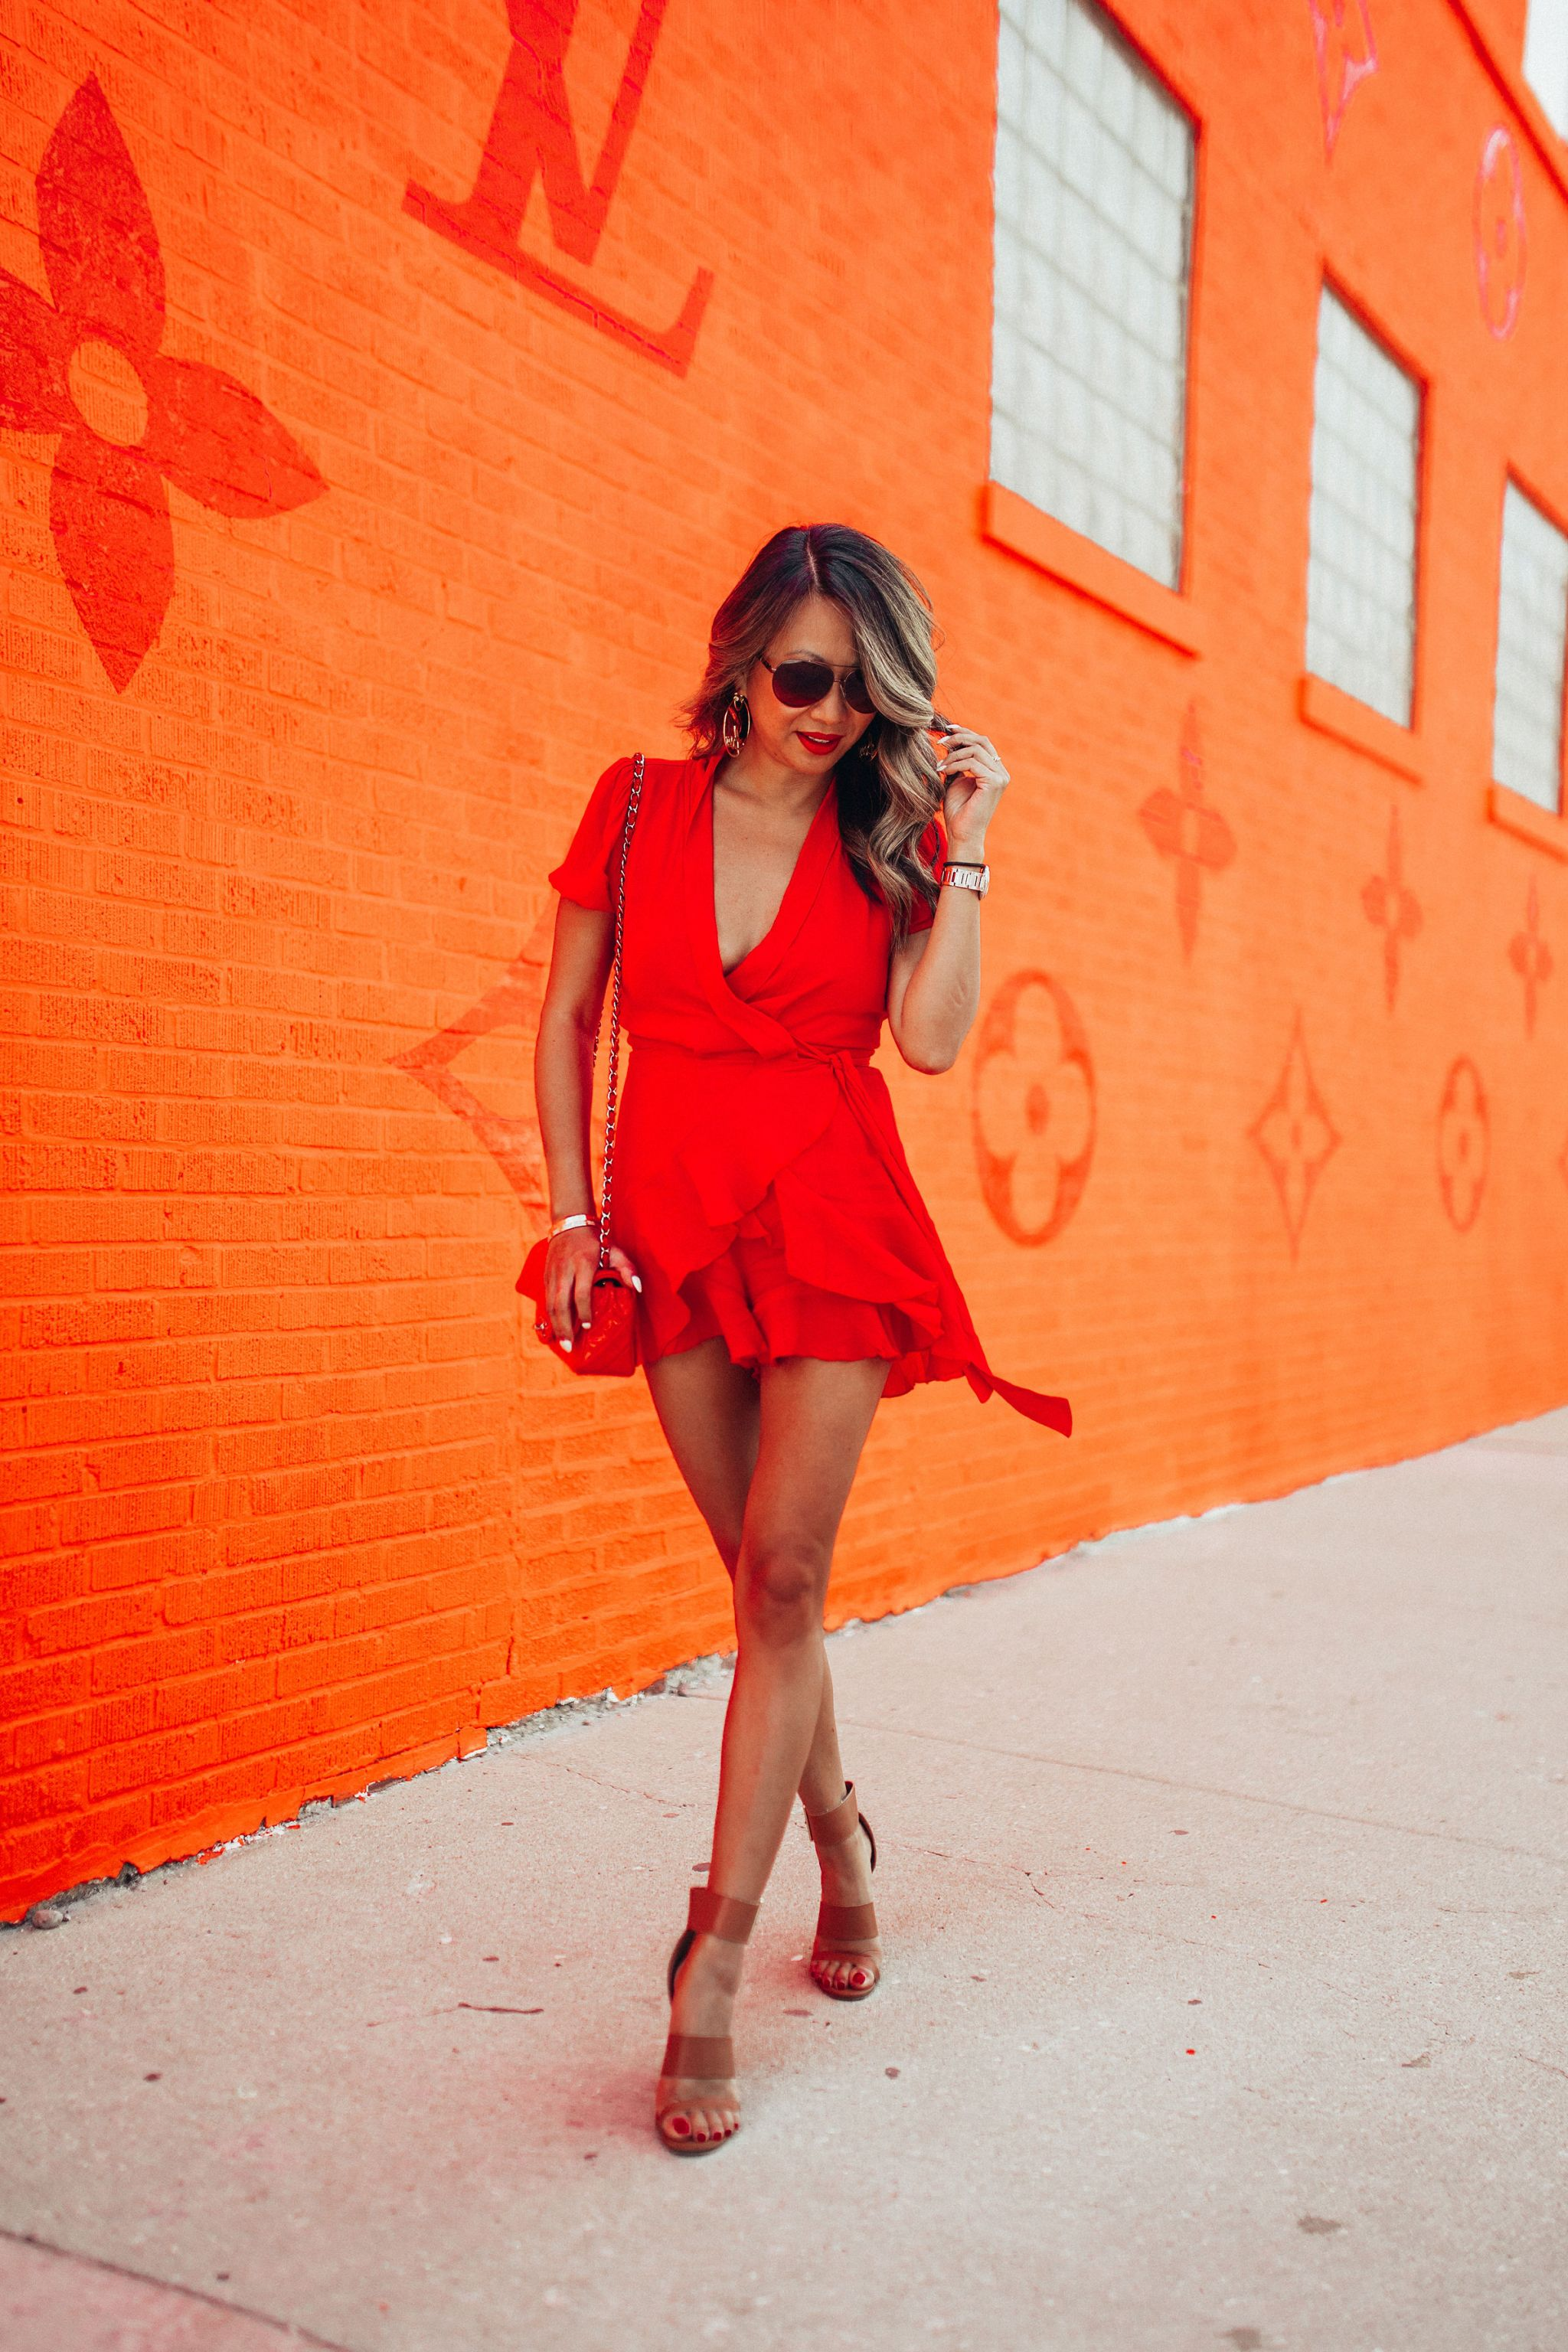 10 red styles under $100, best red dresses under $100, best red dresses for a steal, red dresses on a budget, Jennifer Worman, red soles and red wine, mom blog, Louis Vuitton Pop Up Chicago, Chicago blogger, Akira it's brunch o clock somewhere wear dress, red romper style, summer style, red romper style, wrap style romper